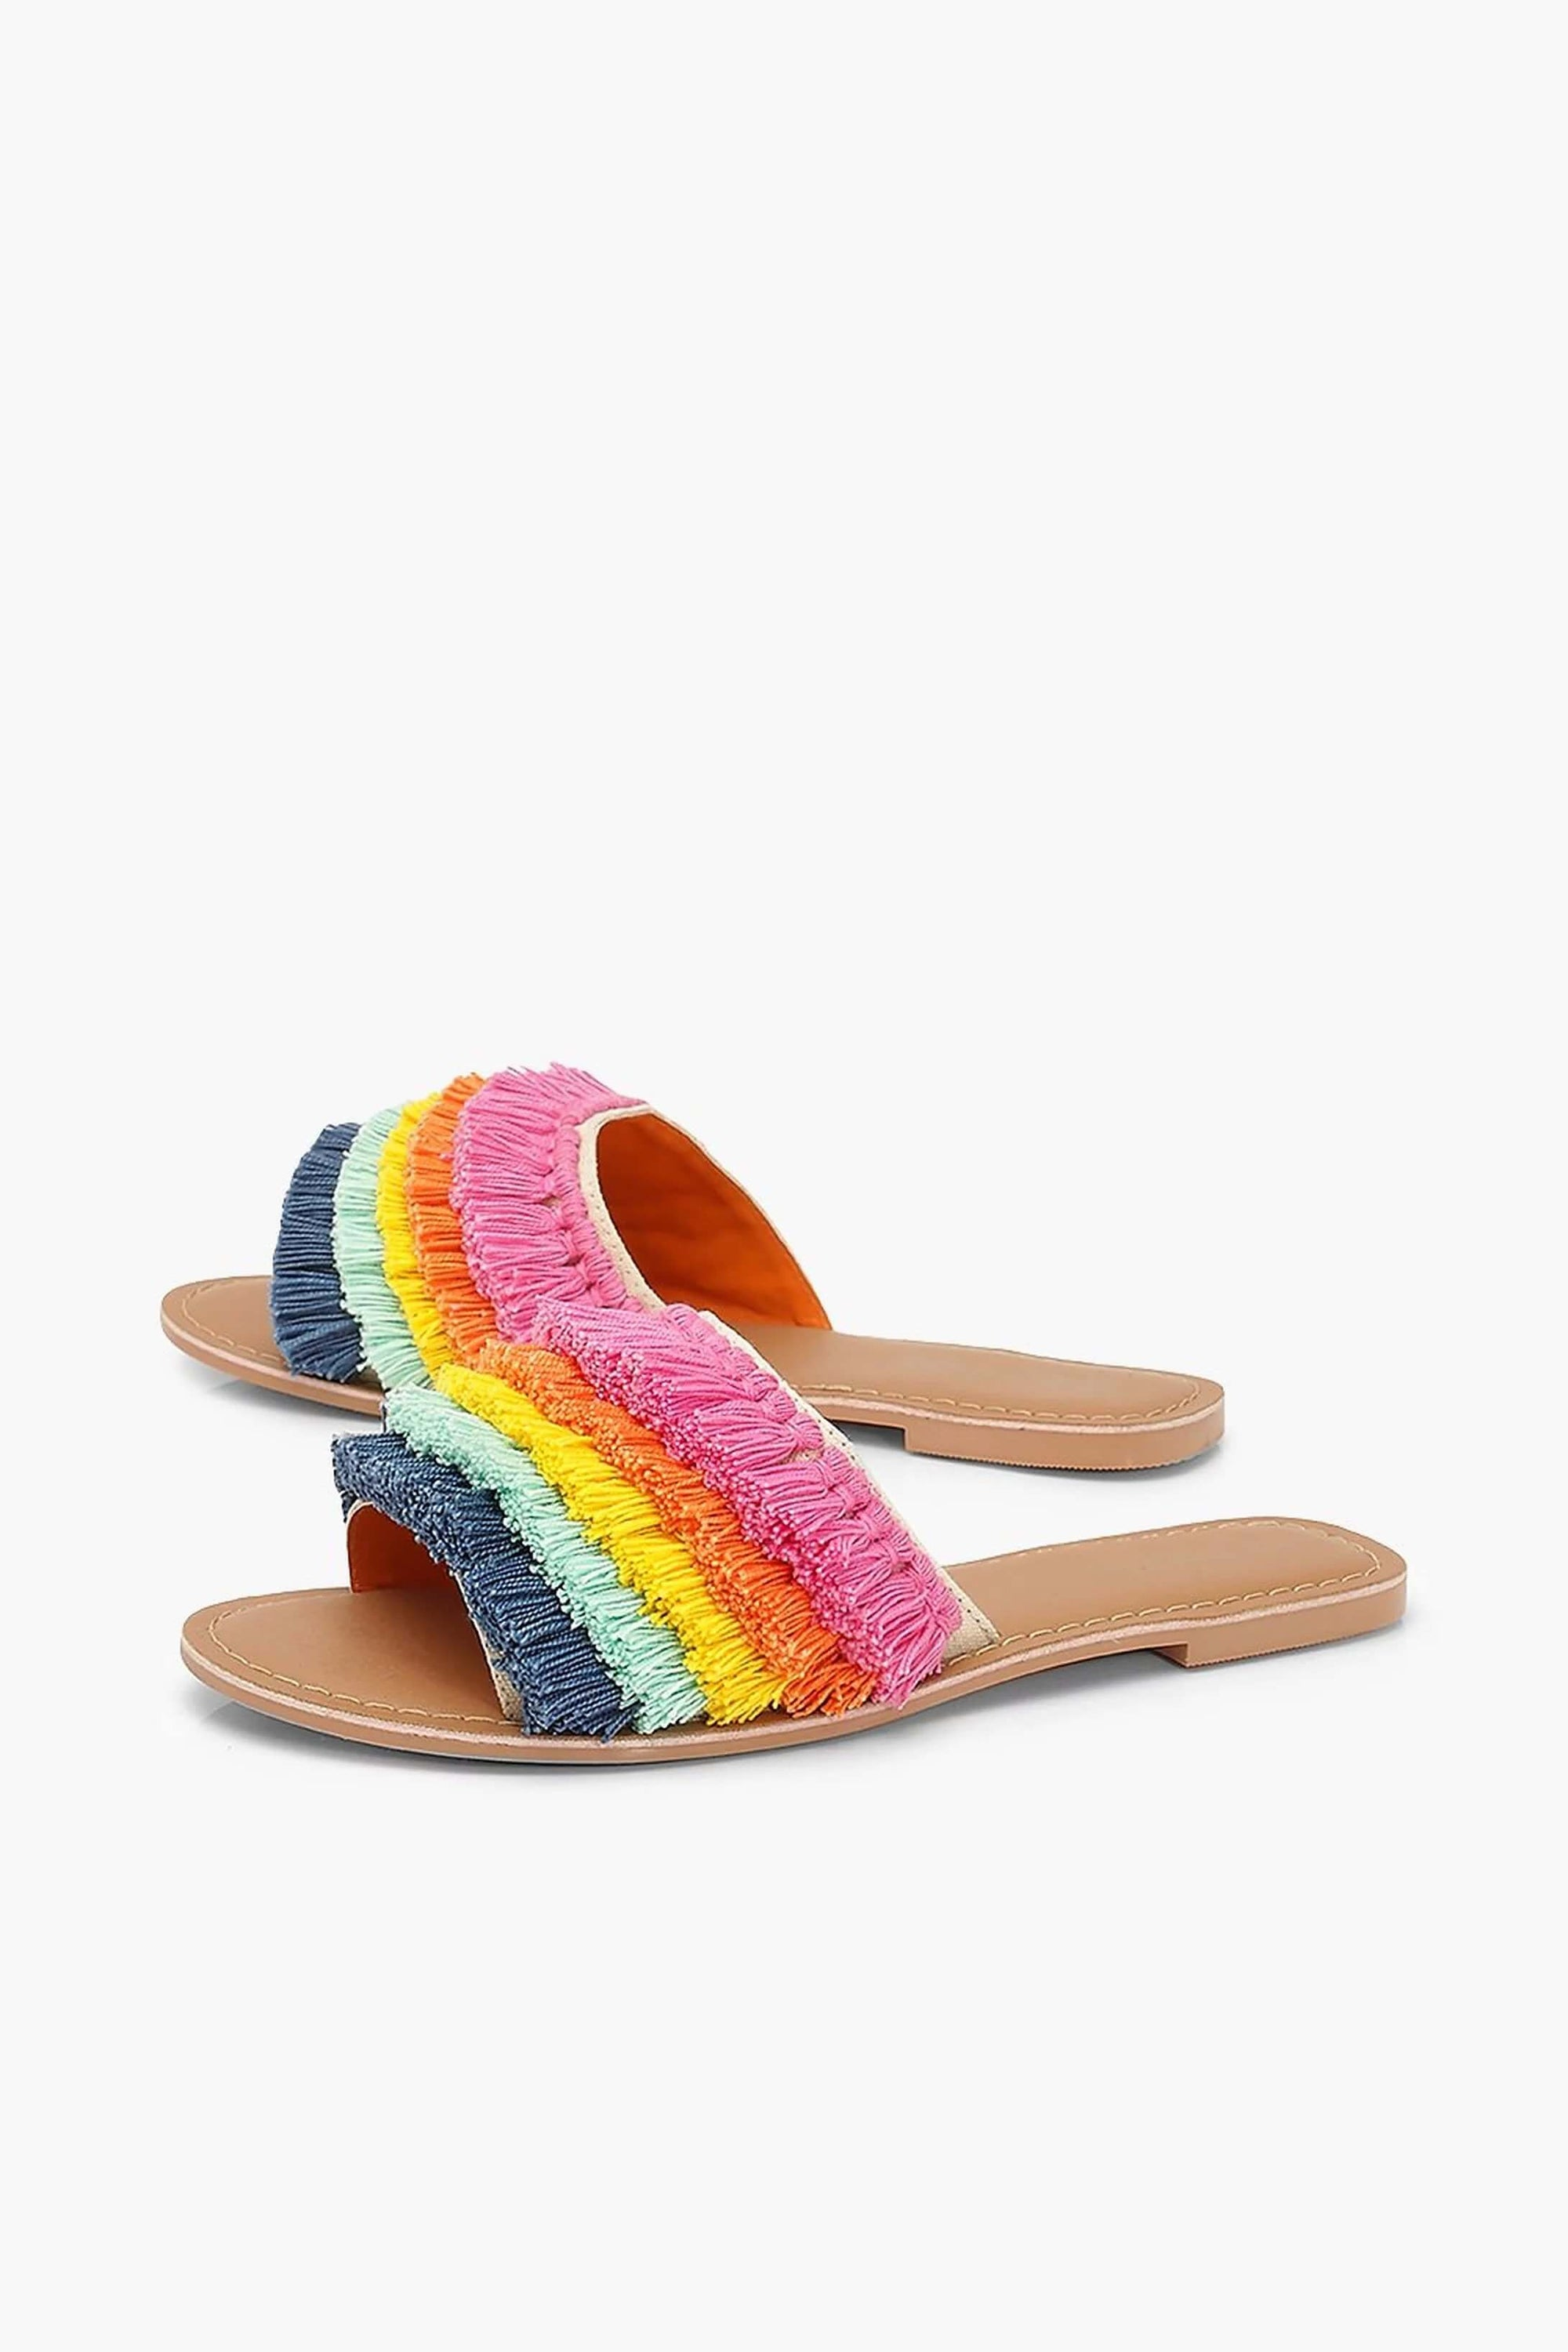 Canvas full color slide boho and casual style, espadrilles type and with fringed details in various colors.